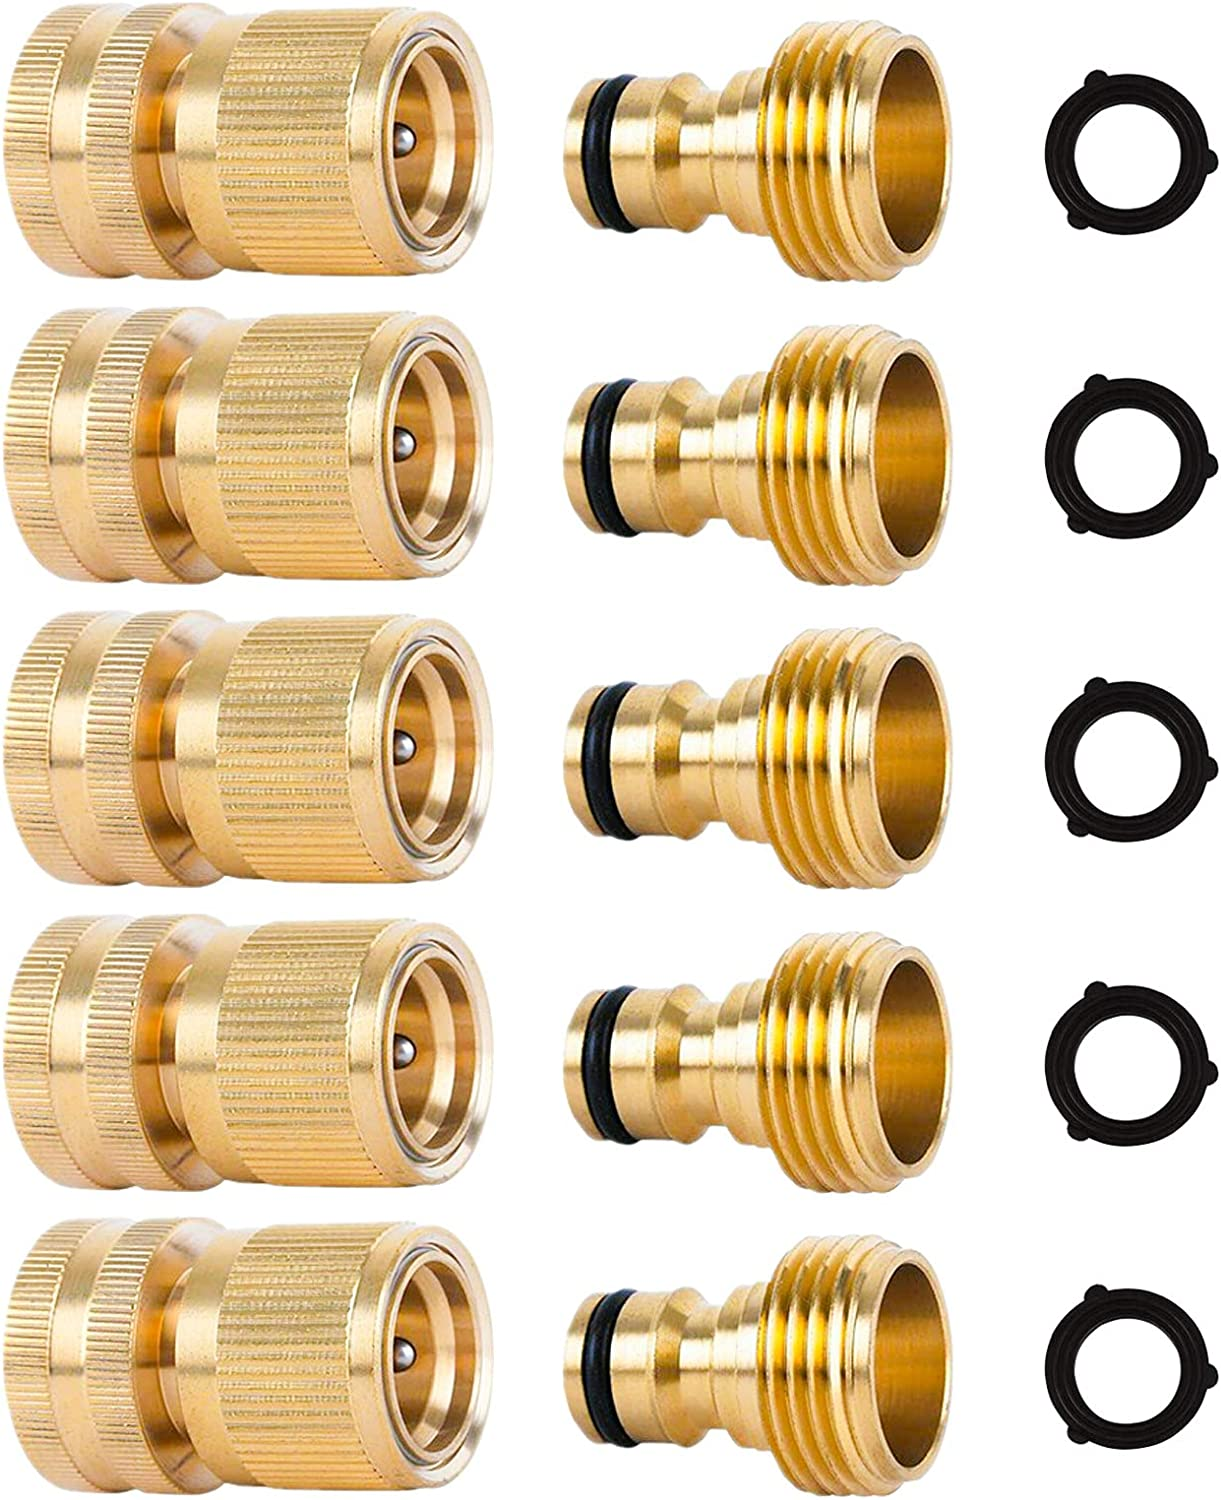 Naiveroo Garden Hose Fitting Quick Connector Solid Brass 3/4 inch Garden Hose Connect Water Hose Connectors Female and Male Set(5 Pack)